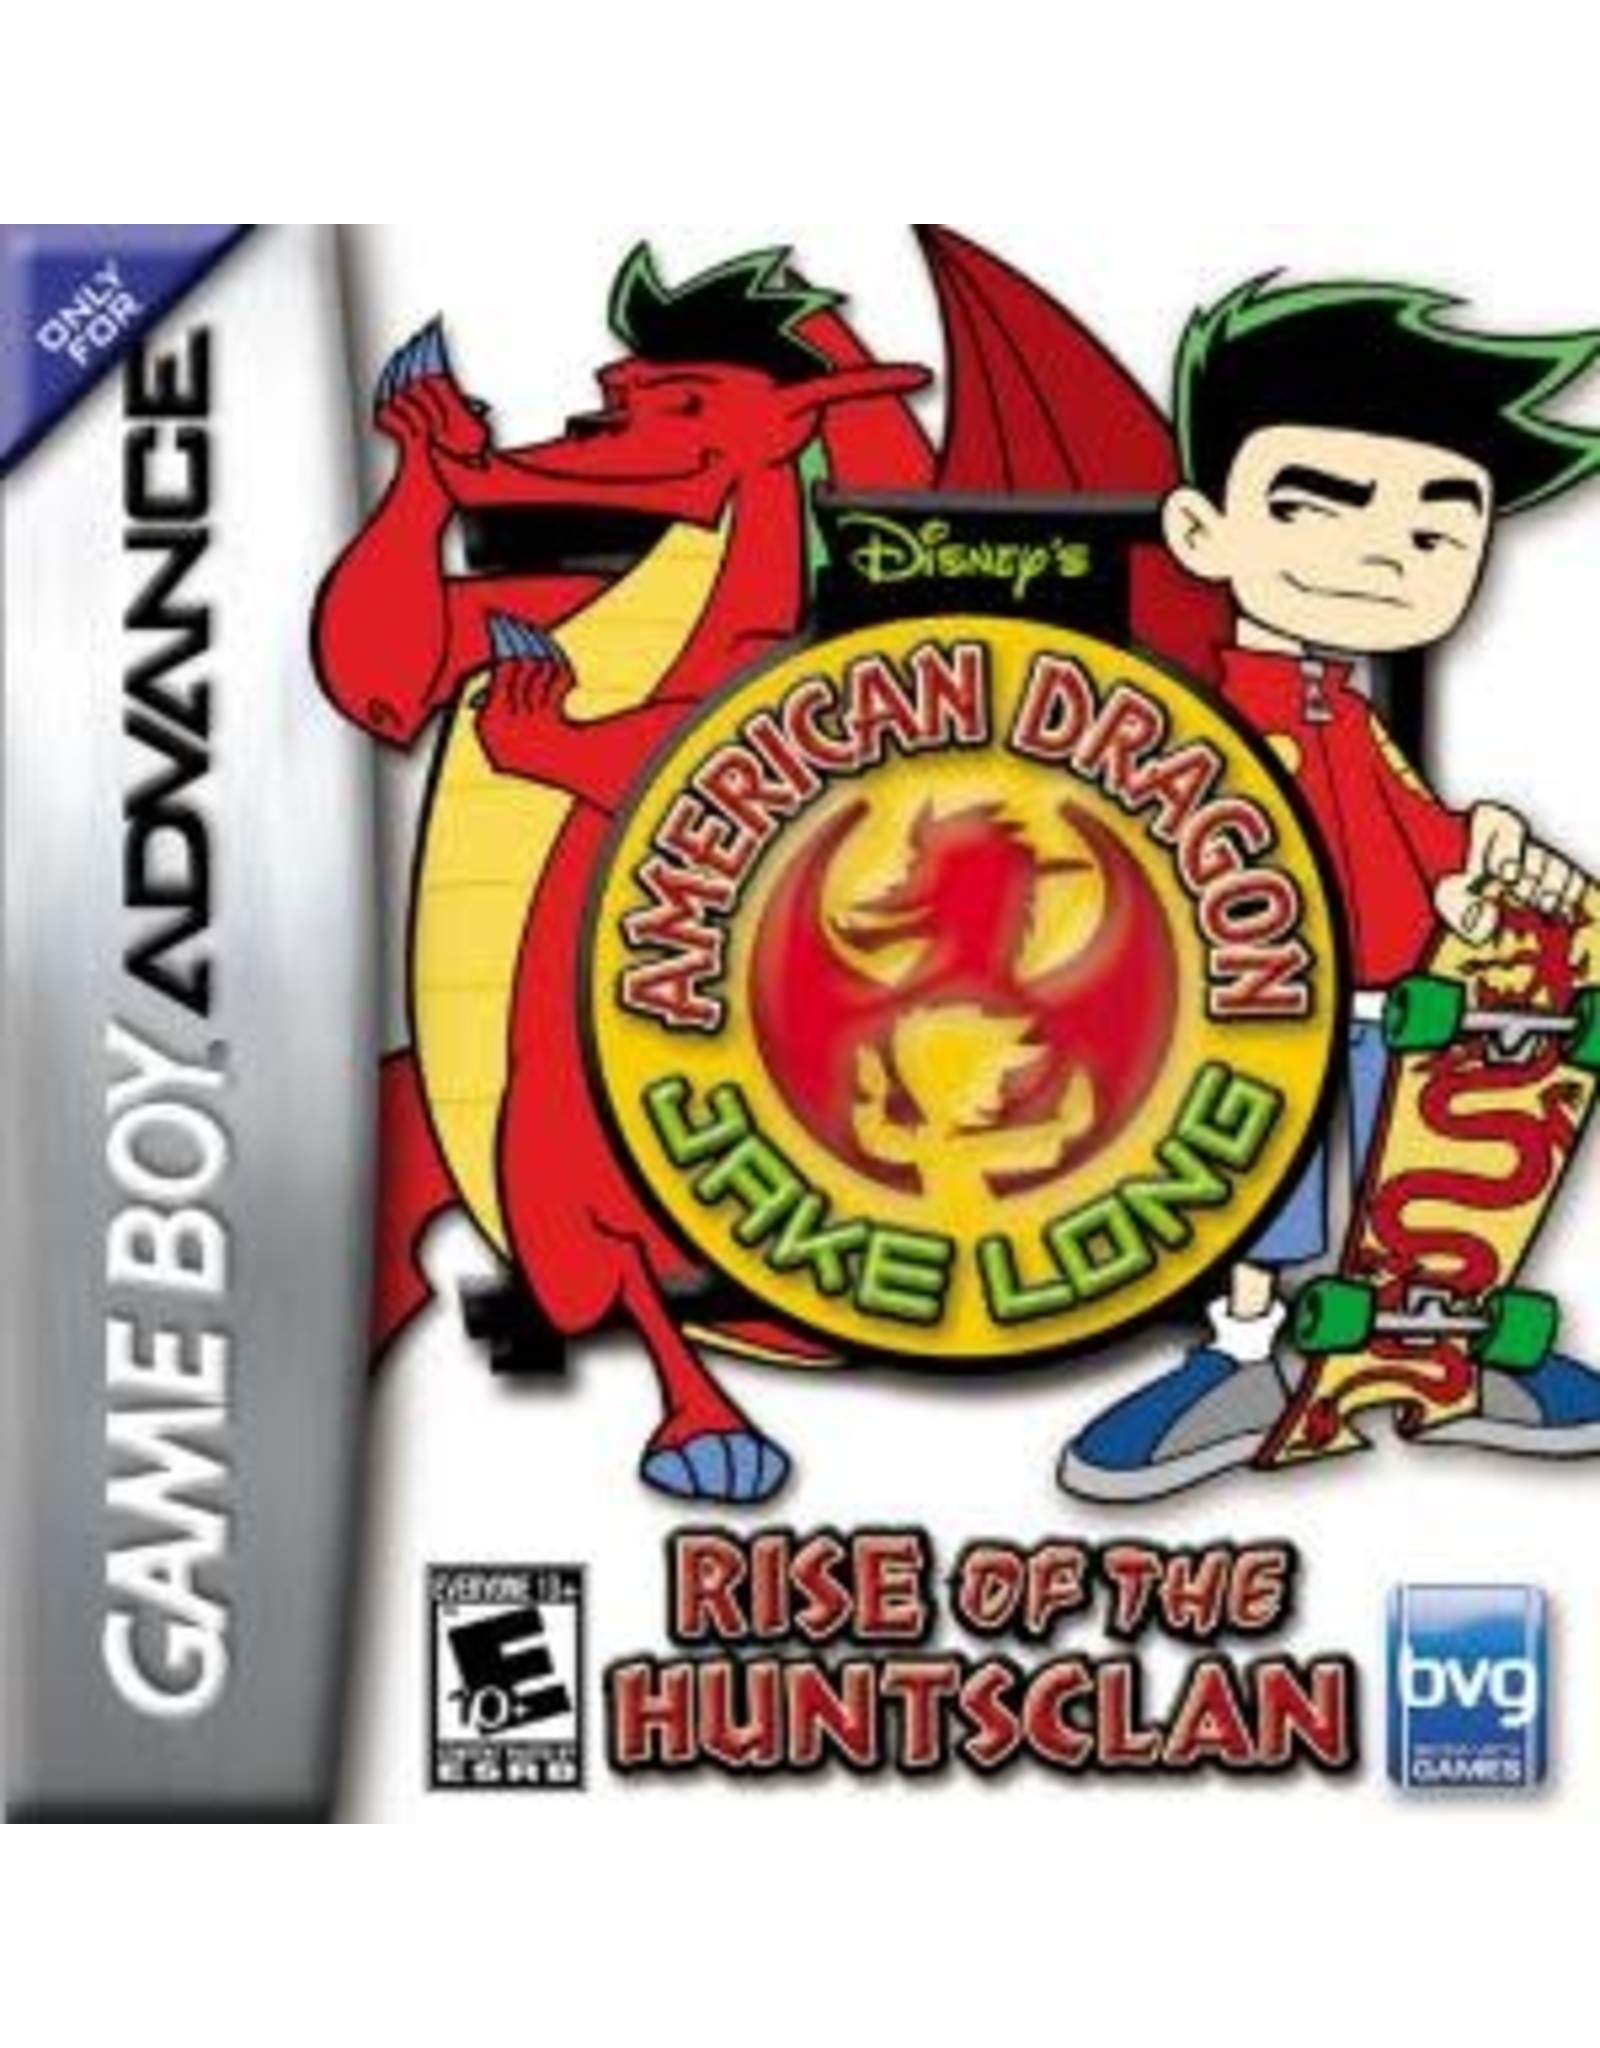 GameBoy Advance American Dragon Jake Long Rise of the Huntsclan (Cart Only)